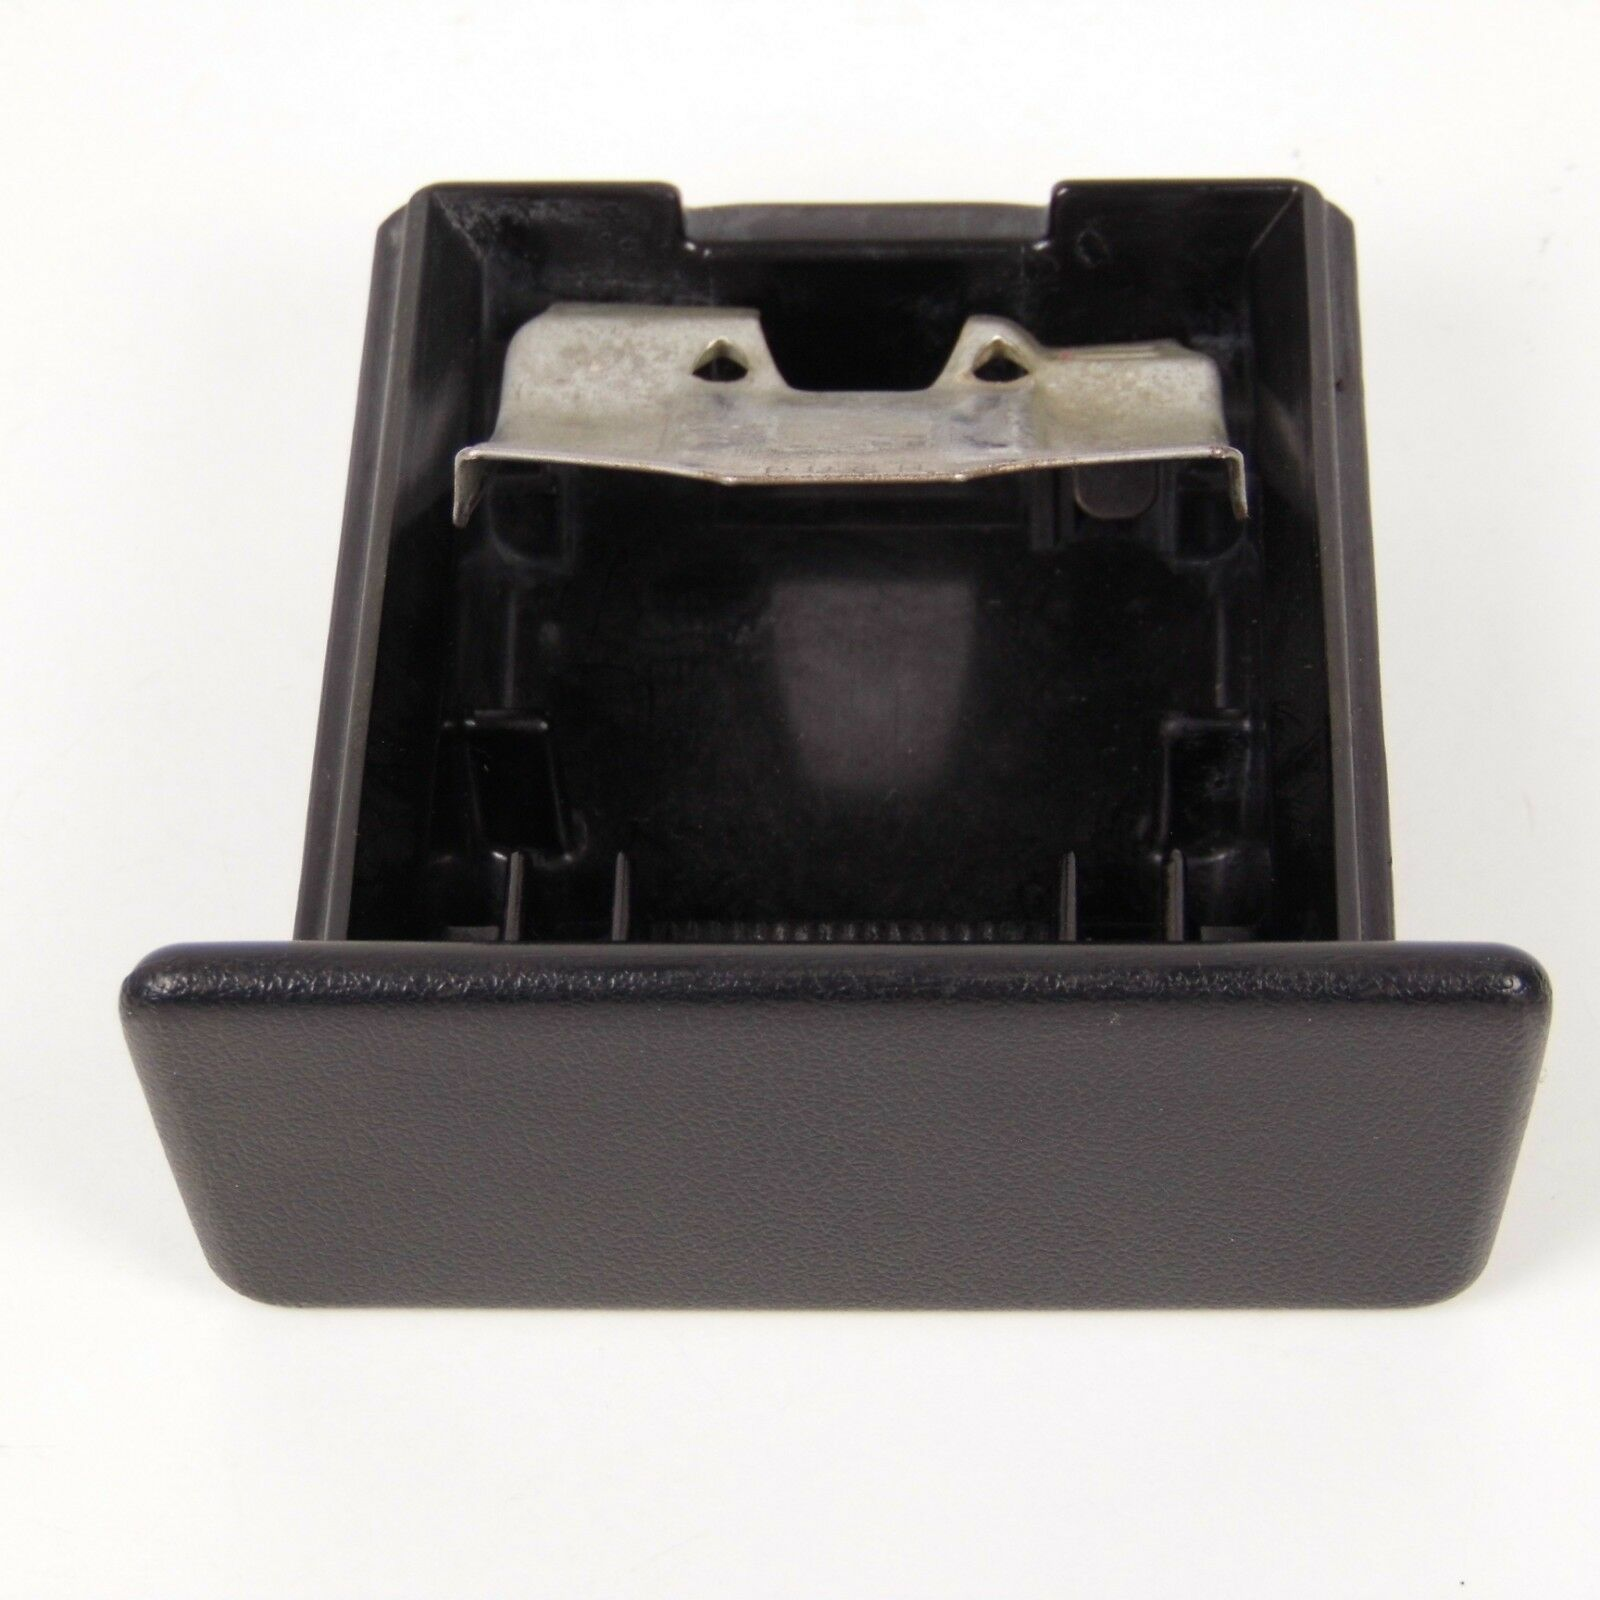 Used Nissan Pulsar Dash Parts For Sale B12 Fuse Box Genuine 1990 1995 Sunny N14 Front Ashtray Ash Tray